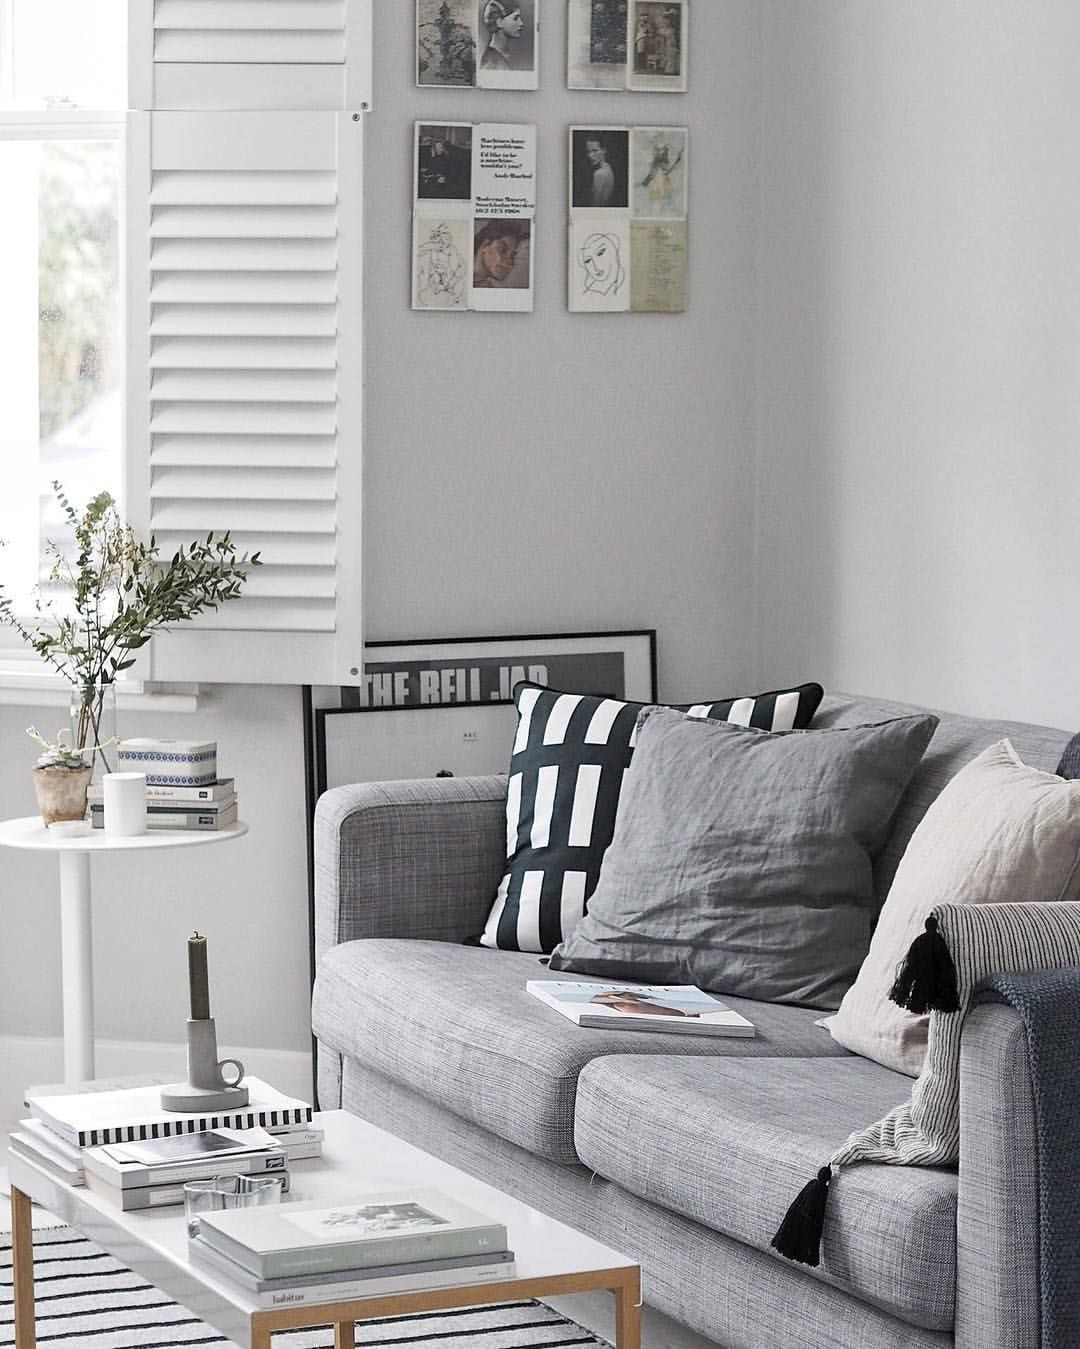 Light Grey Living Room With Grey IKEA Sofa And Monochrome Accessories - Minimal Design And Pared-back Style | Living Room | Interiores, Deco Y Estancias